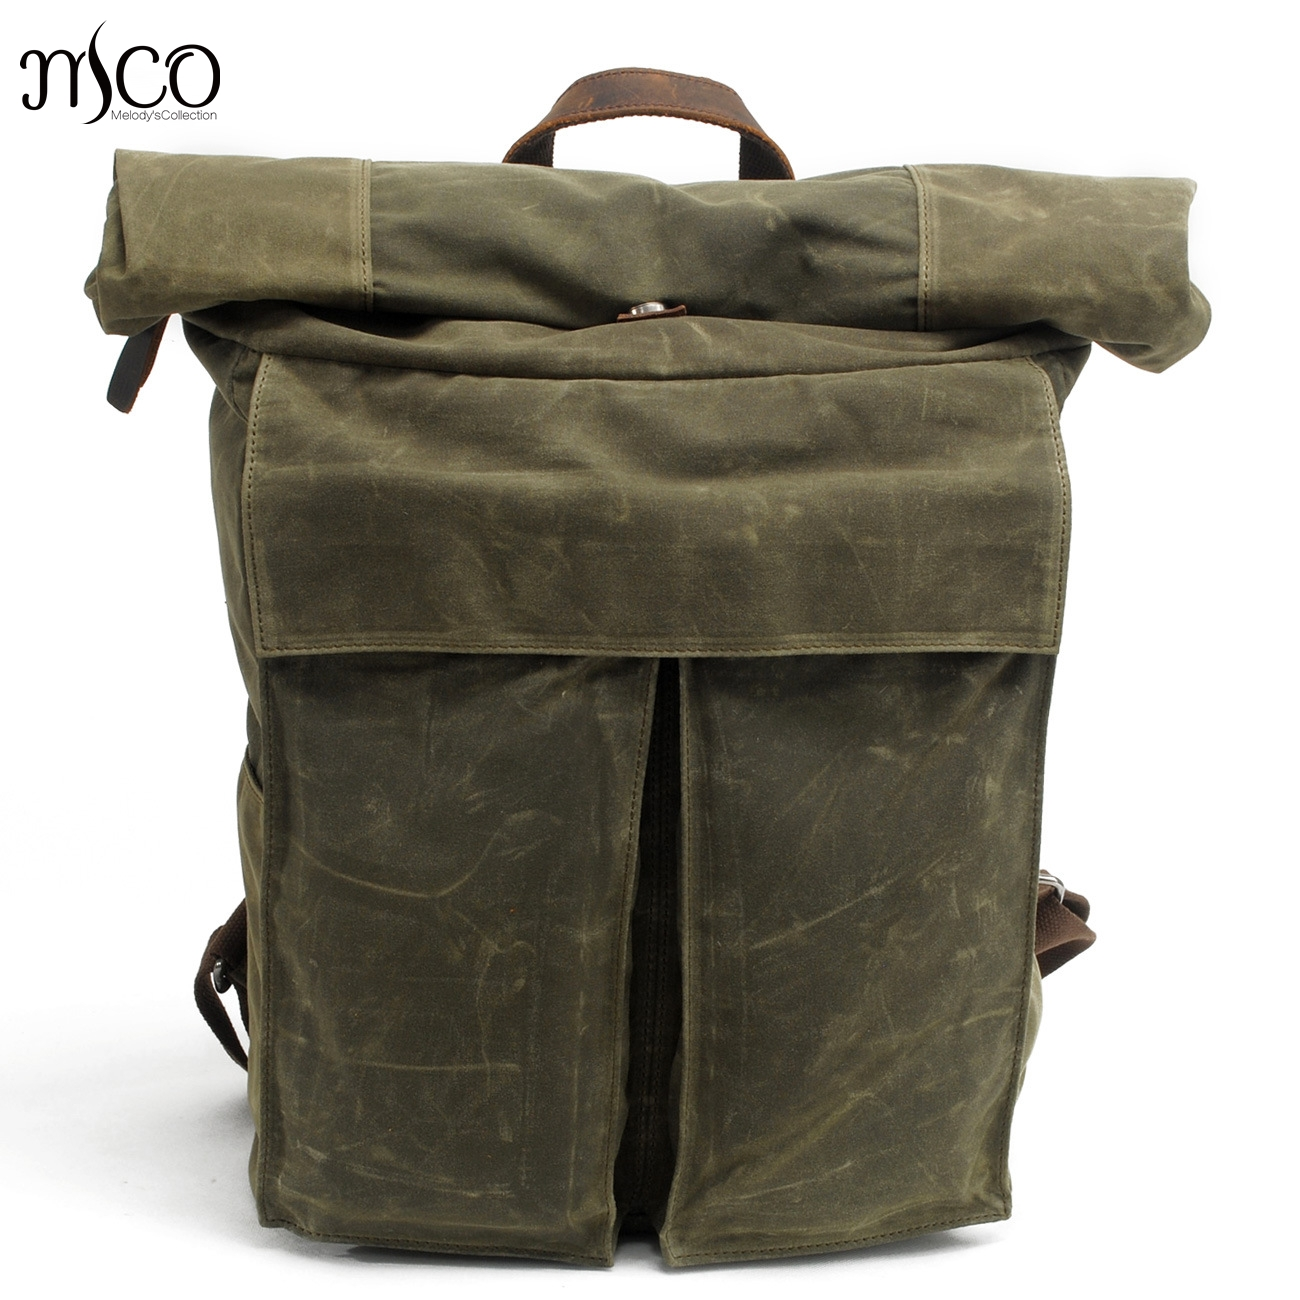 MCO 2018 Vintage Waterproof Waxed Canvas Men Travel Backpack Large Capacity  Women Weekend Bag Basic Roll Top Military Knapsack-in Backpacks from  Luggage ... e99393a0df6a8